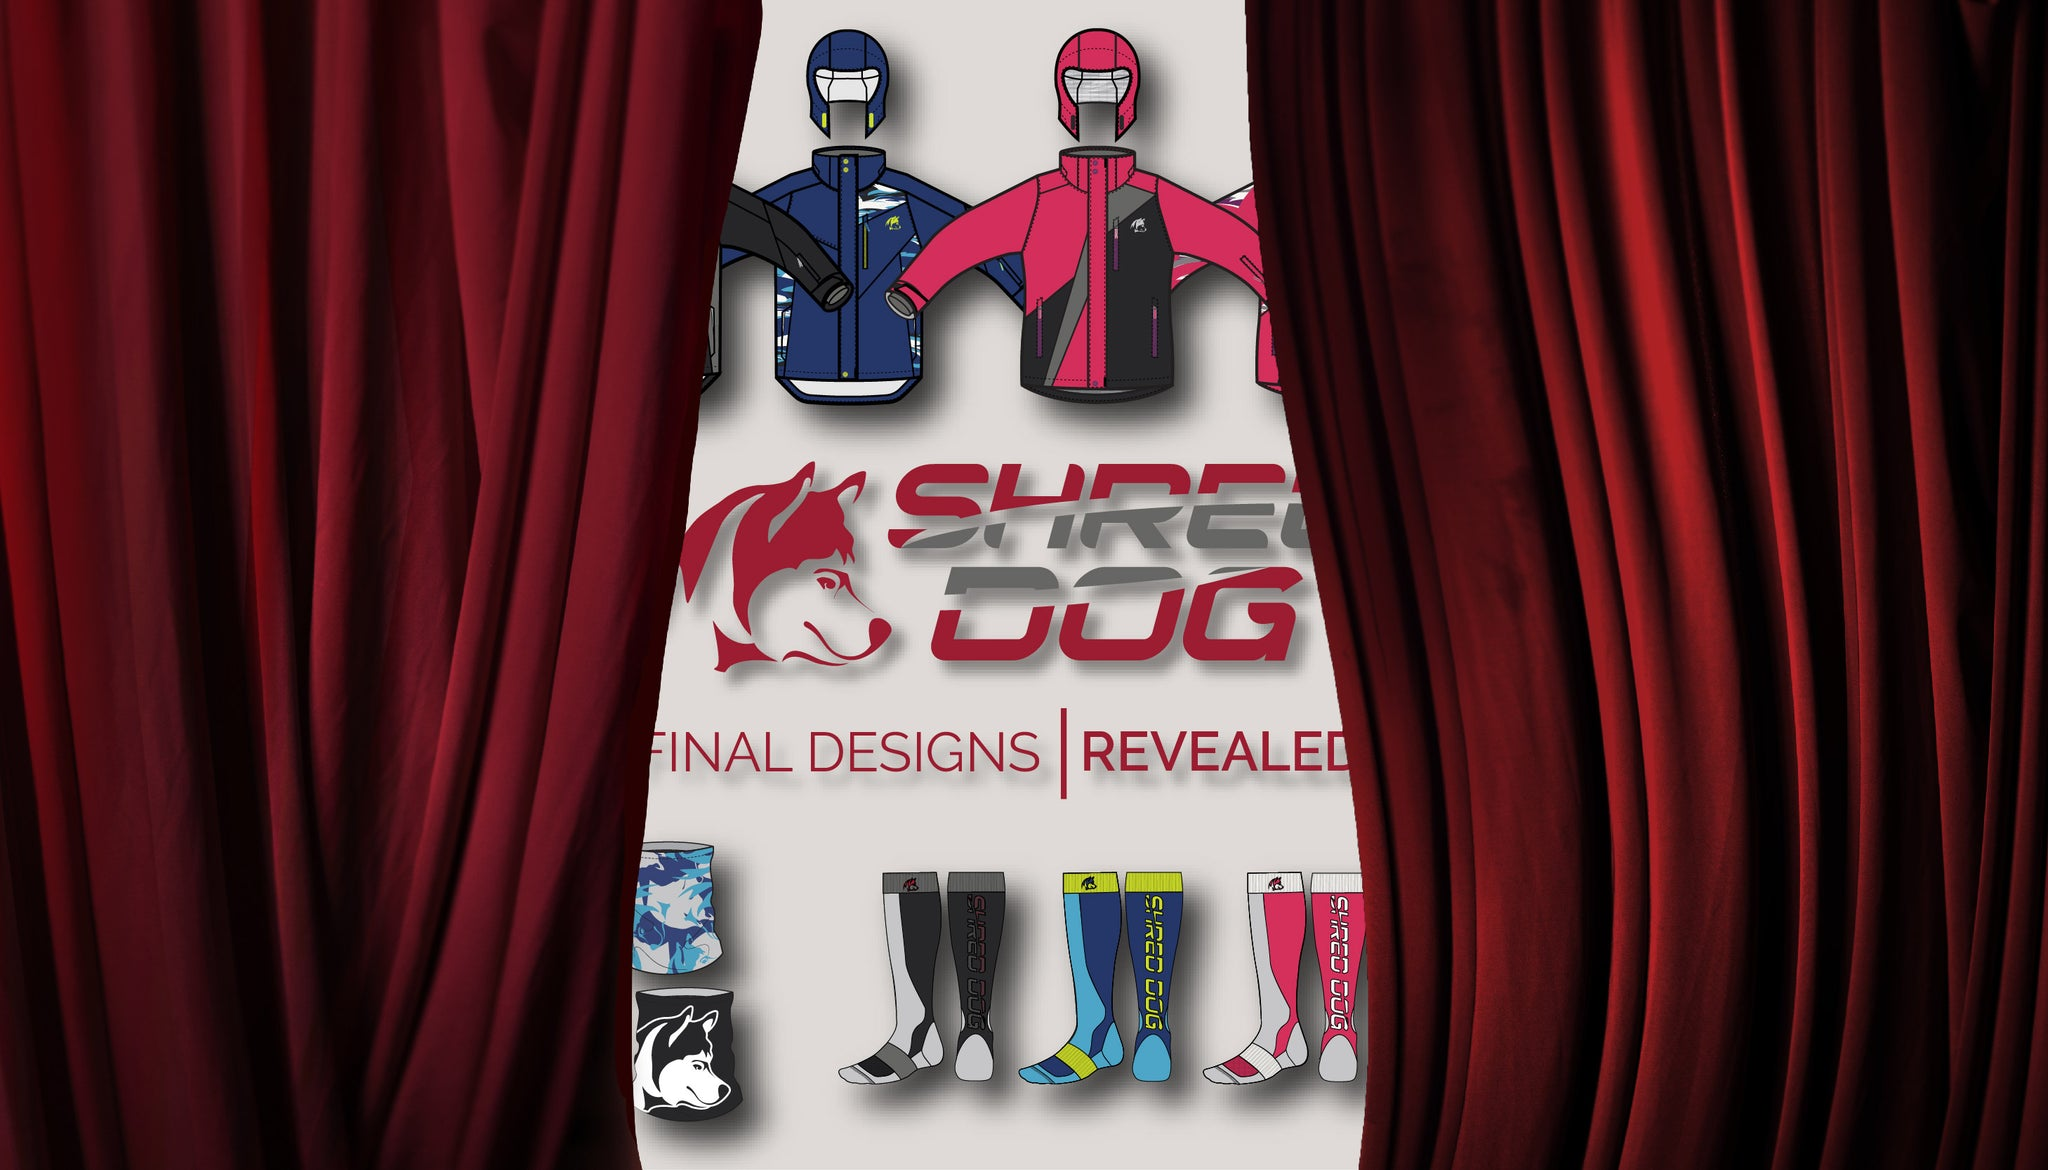 SHRED DOG Design Reveal